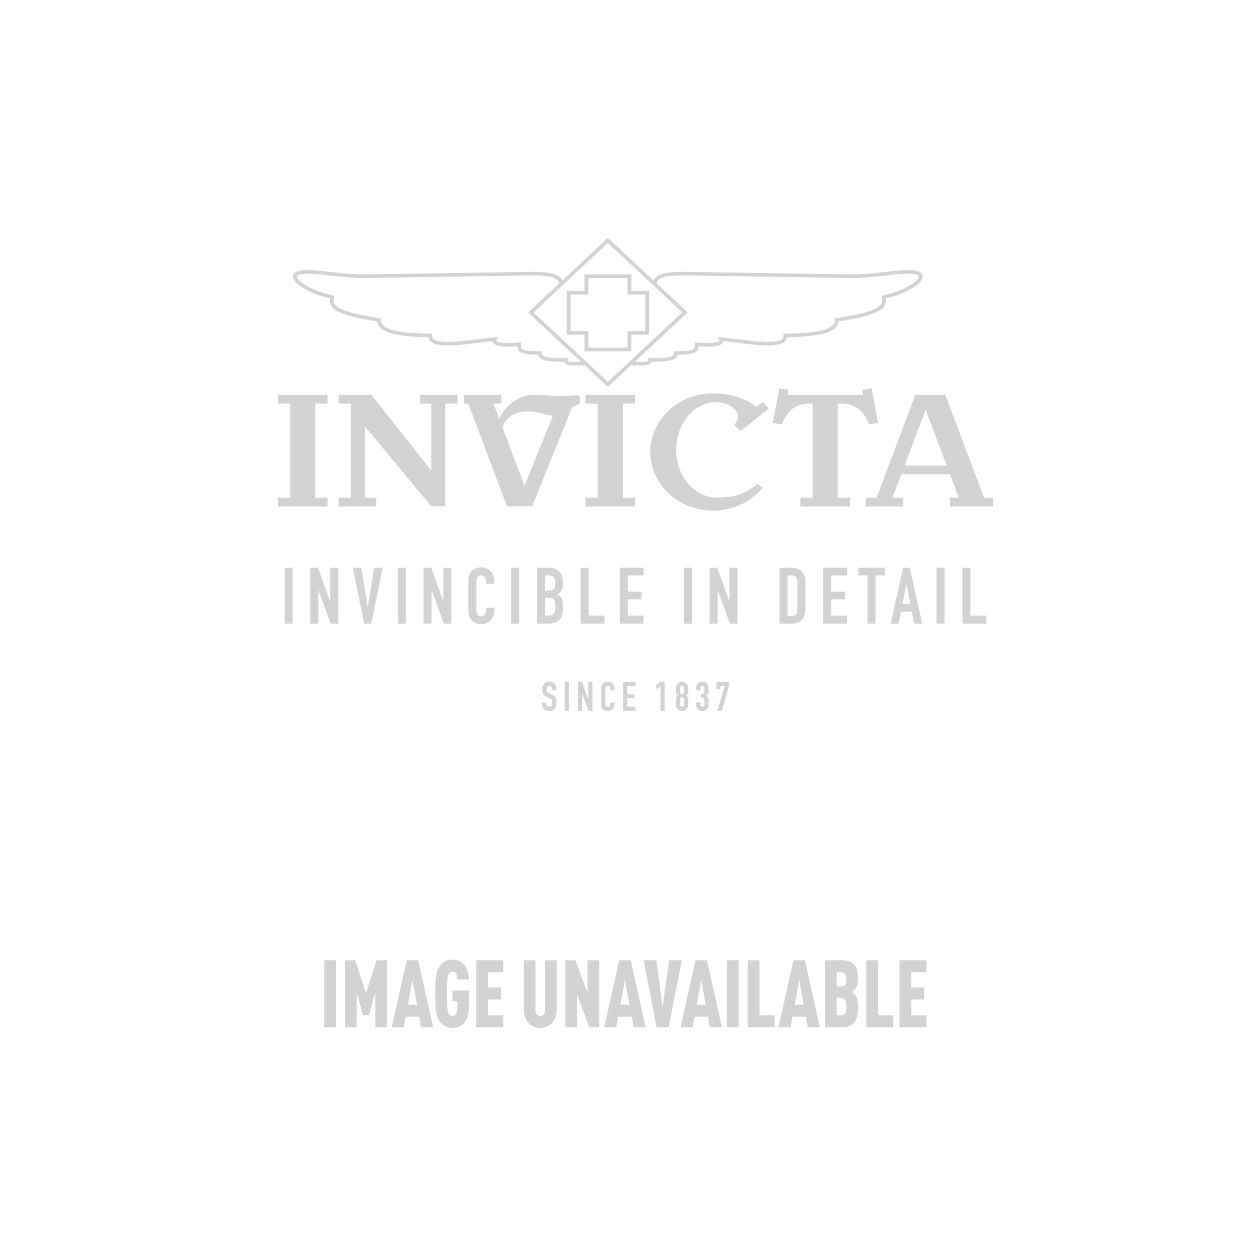 Invicta S1 Rally Swiss Made Quartz Watch - Gunmetal case with Black, Blue tone Leather band - Model 90100